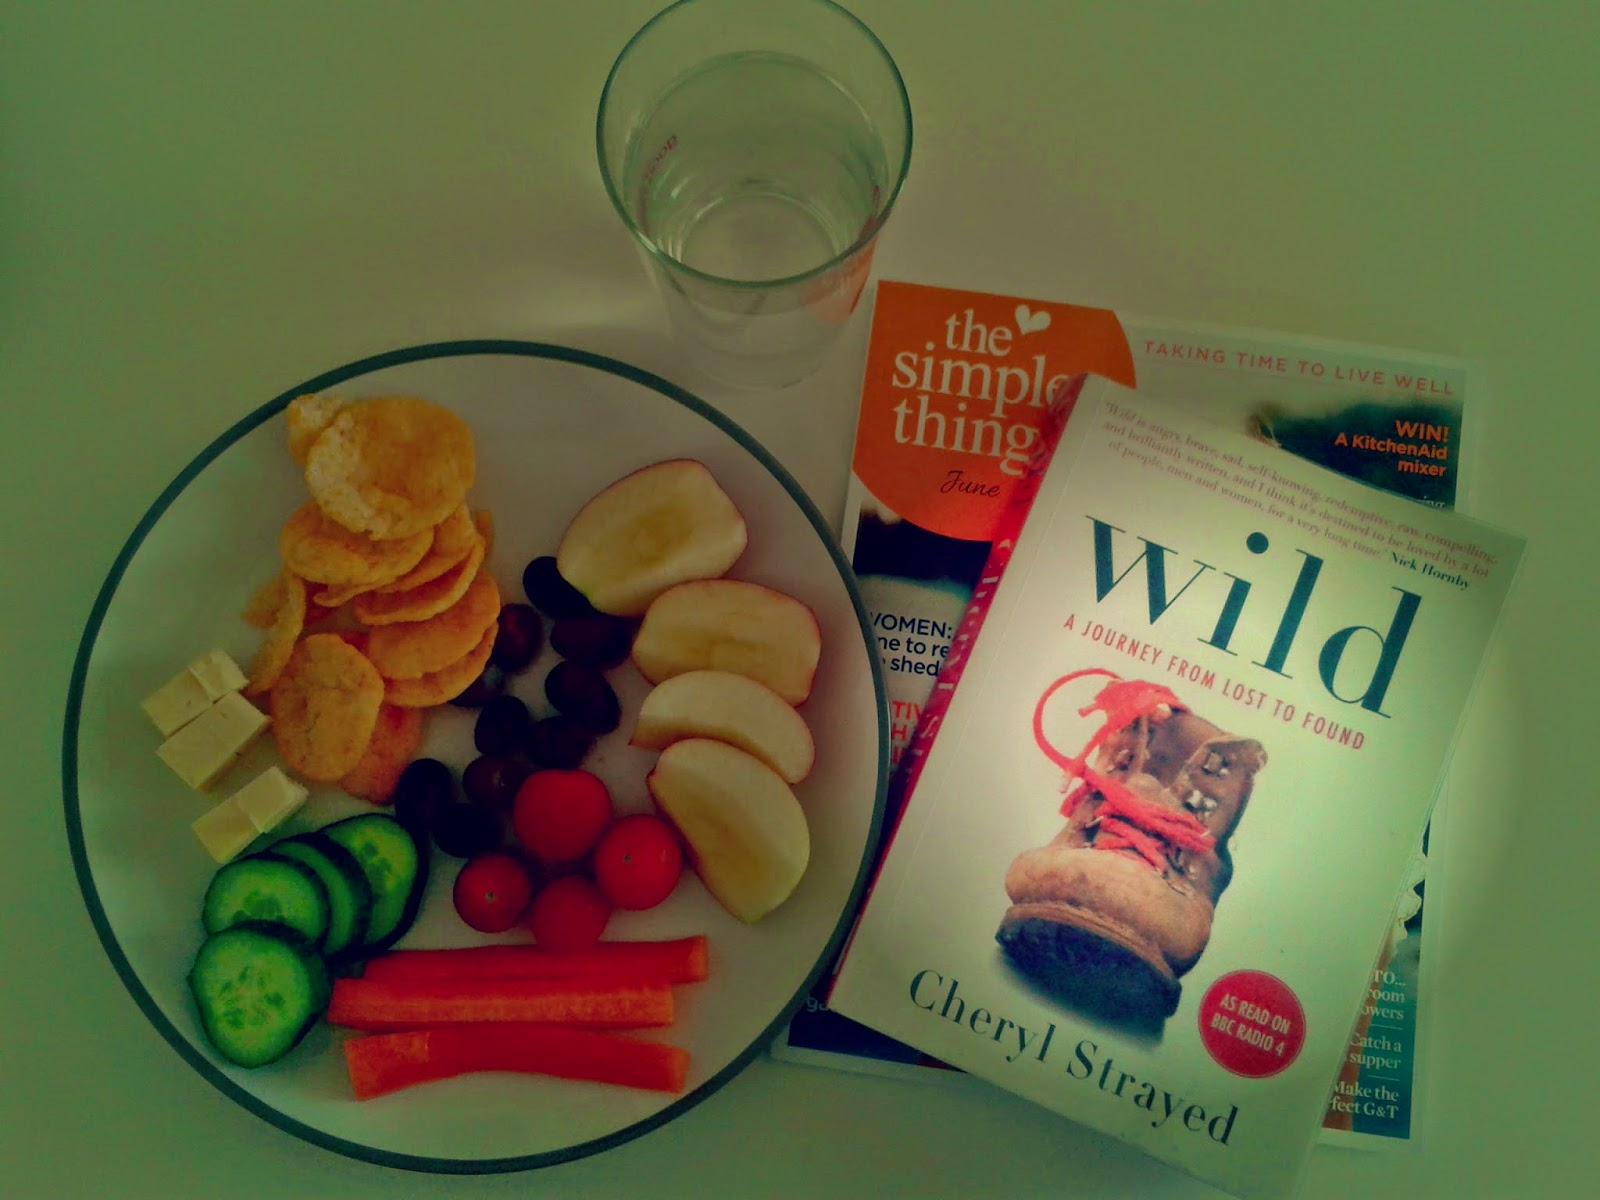 Project 365 day 174 - Wild by Cheryl Strayed // 76sunflowers